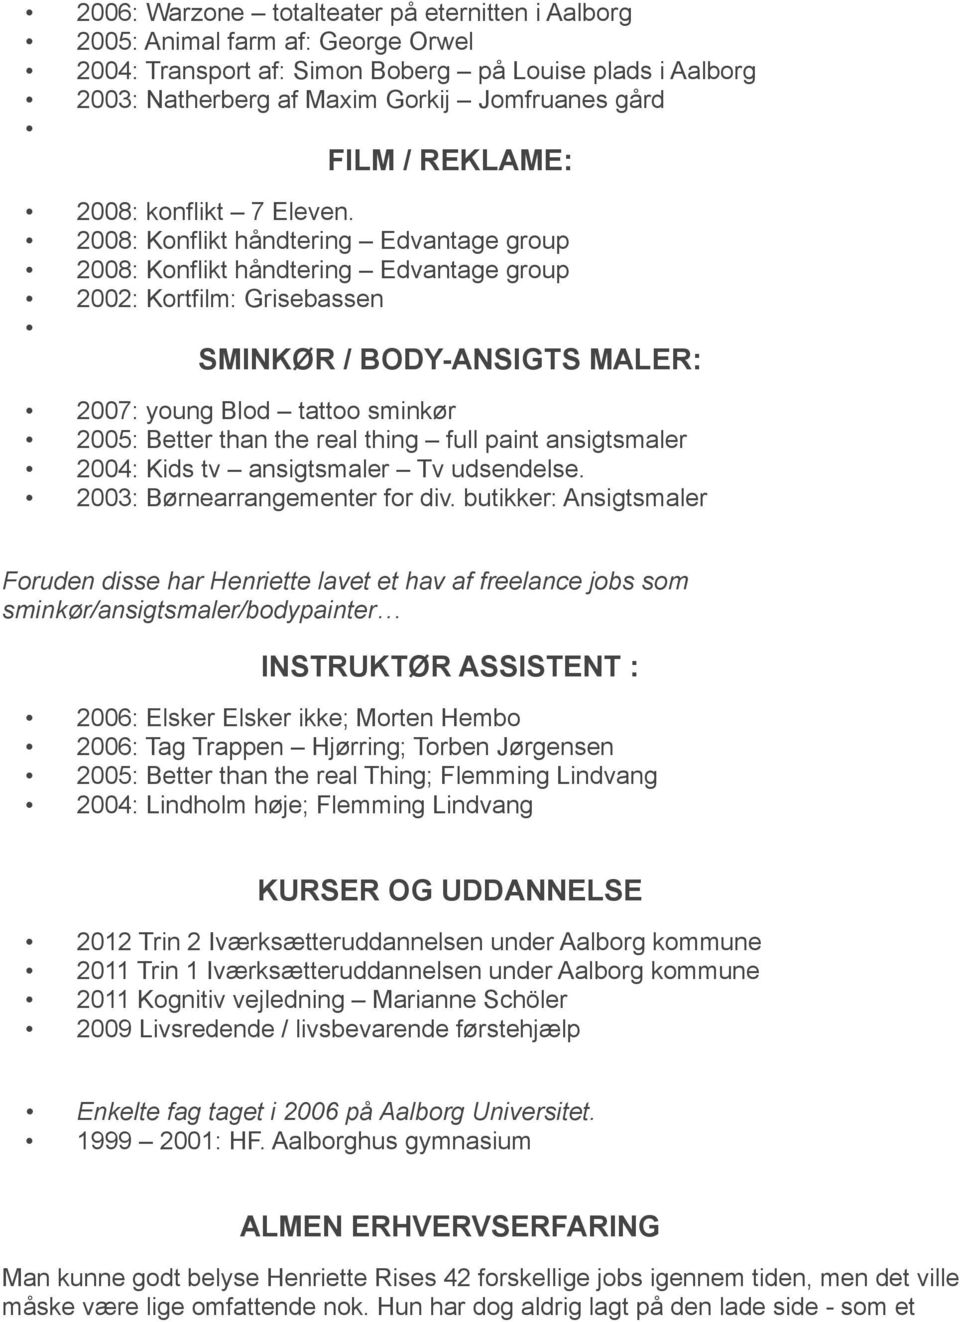 2008: Konflikt håndtering Edvantage group 2008: Konflikt håndtering Edvantage group 2002: Kortfilm: Grisebassen SMINKØR / BODY-ANSIGTS MALER: 2007: young Blod tattoo sminkør 2005: Better than the